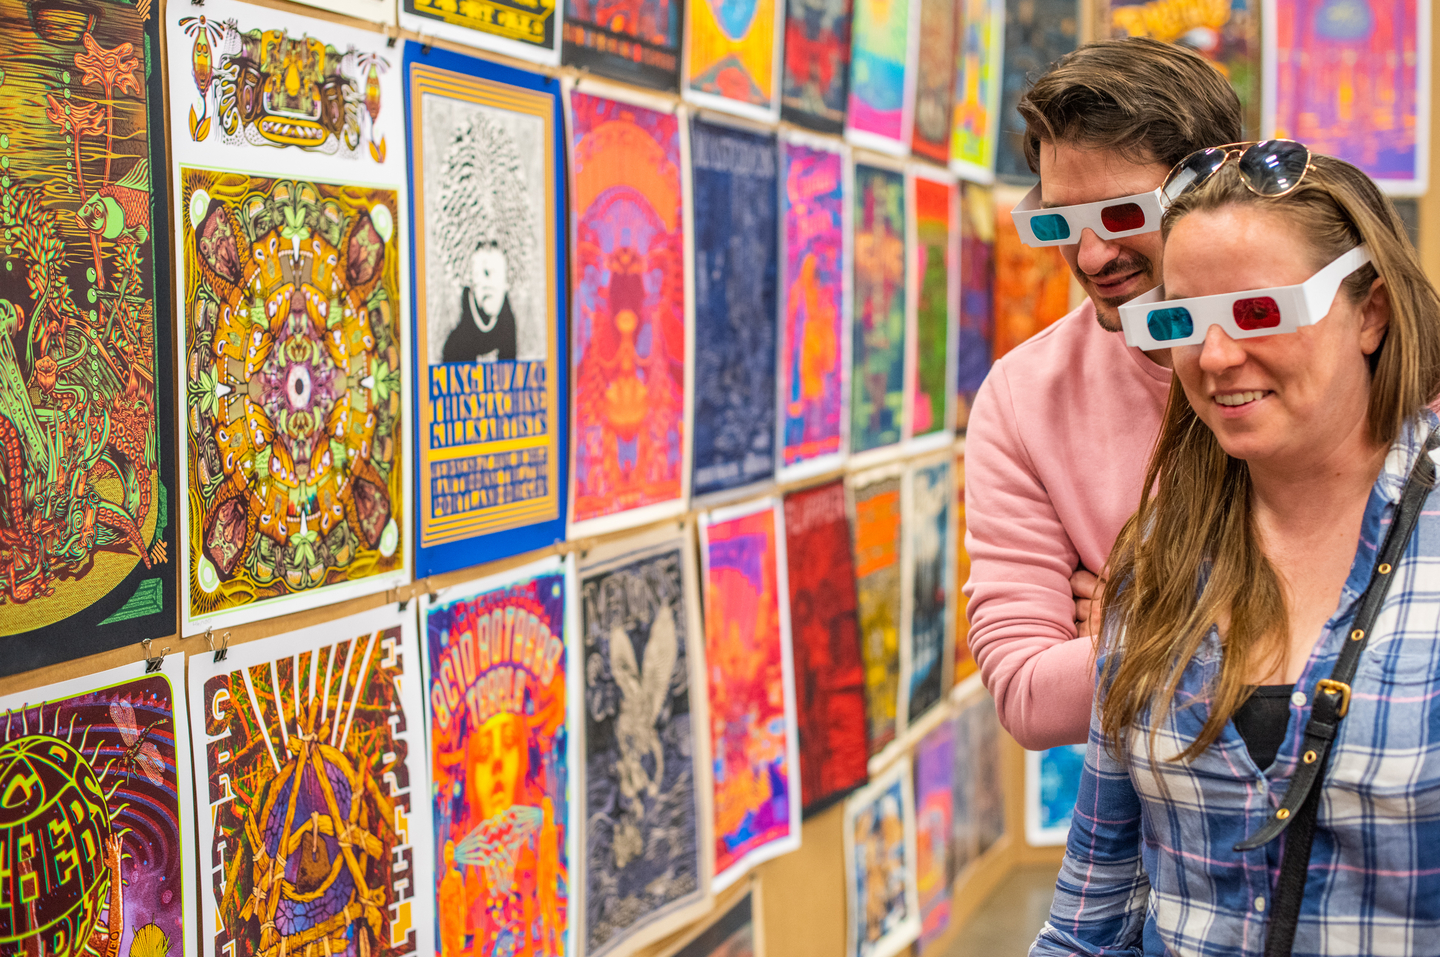 Presented by the American Poster Institute (API), Flatstock displays the works of the world's top gig poster artists. The show features posters of varying styles, colors, and techniques for sale by the talented artists who created them.